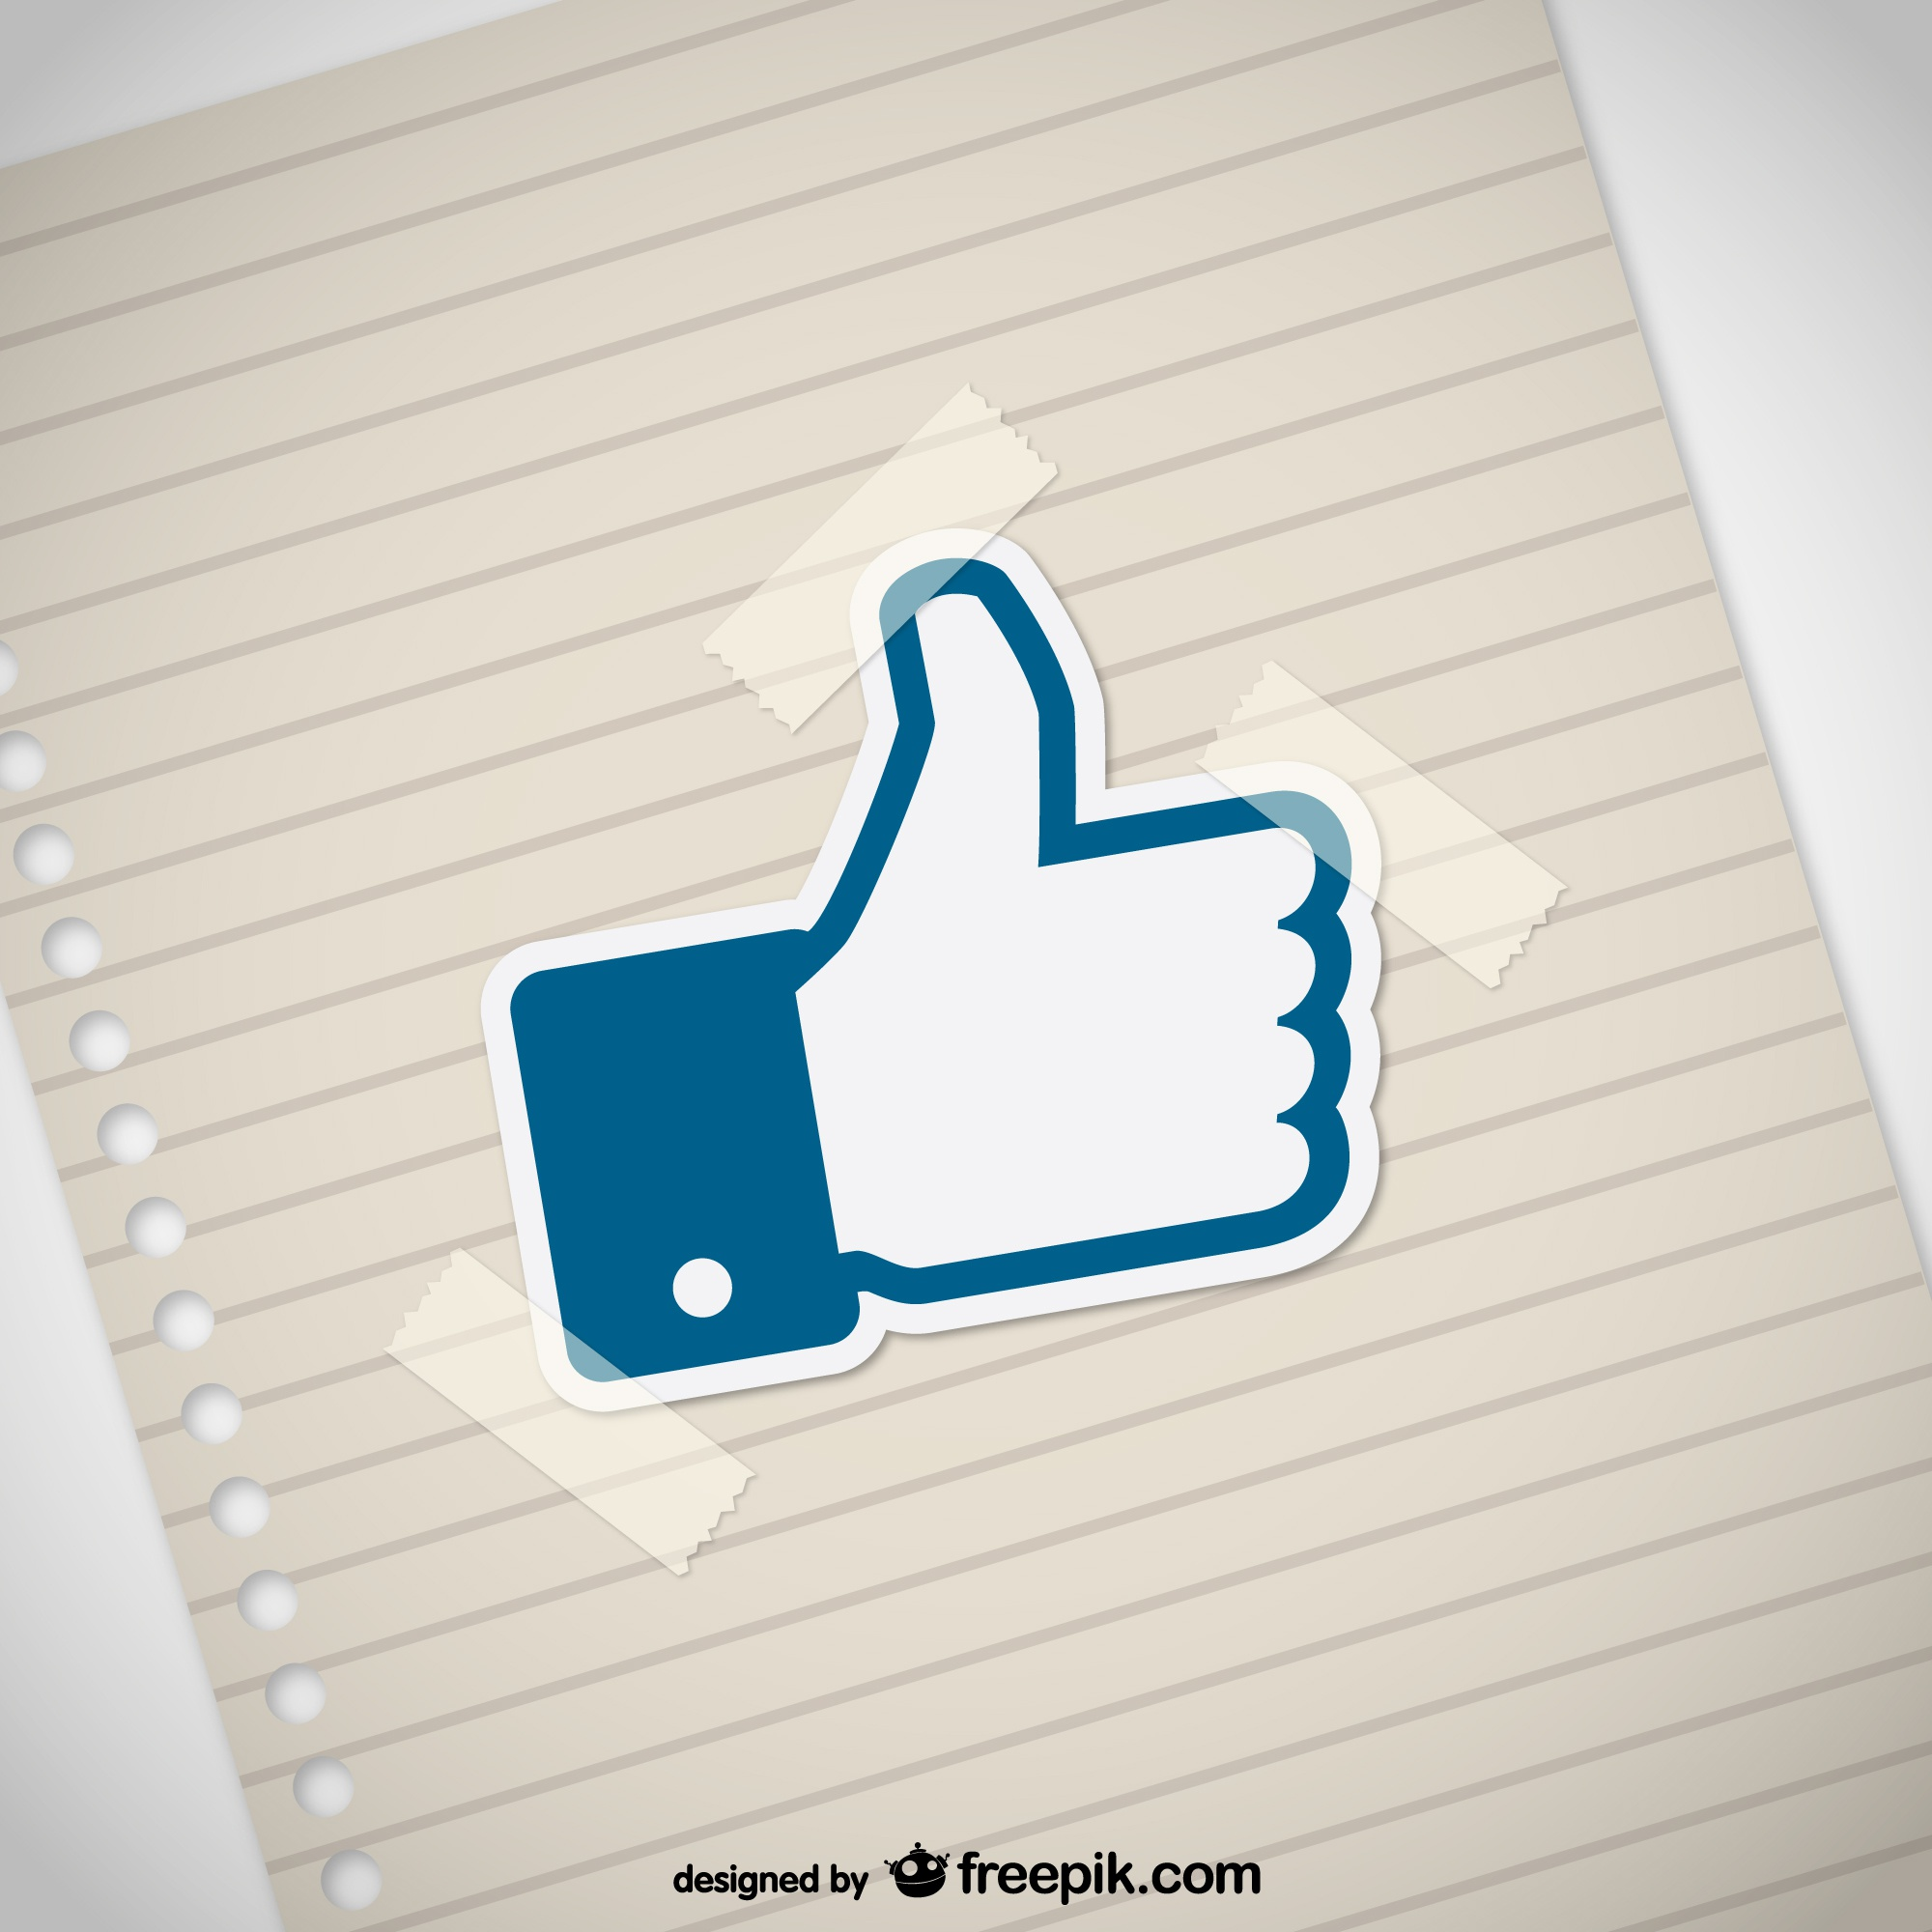 Thumbs up with paper texture